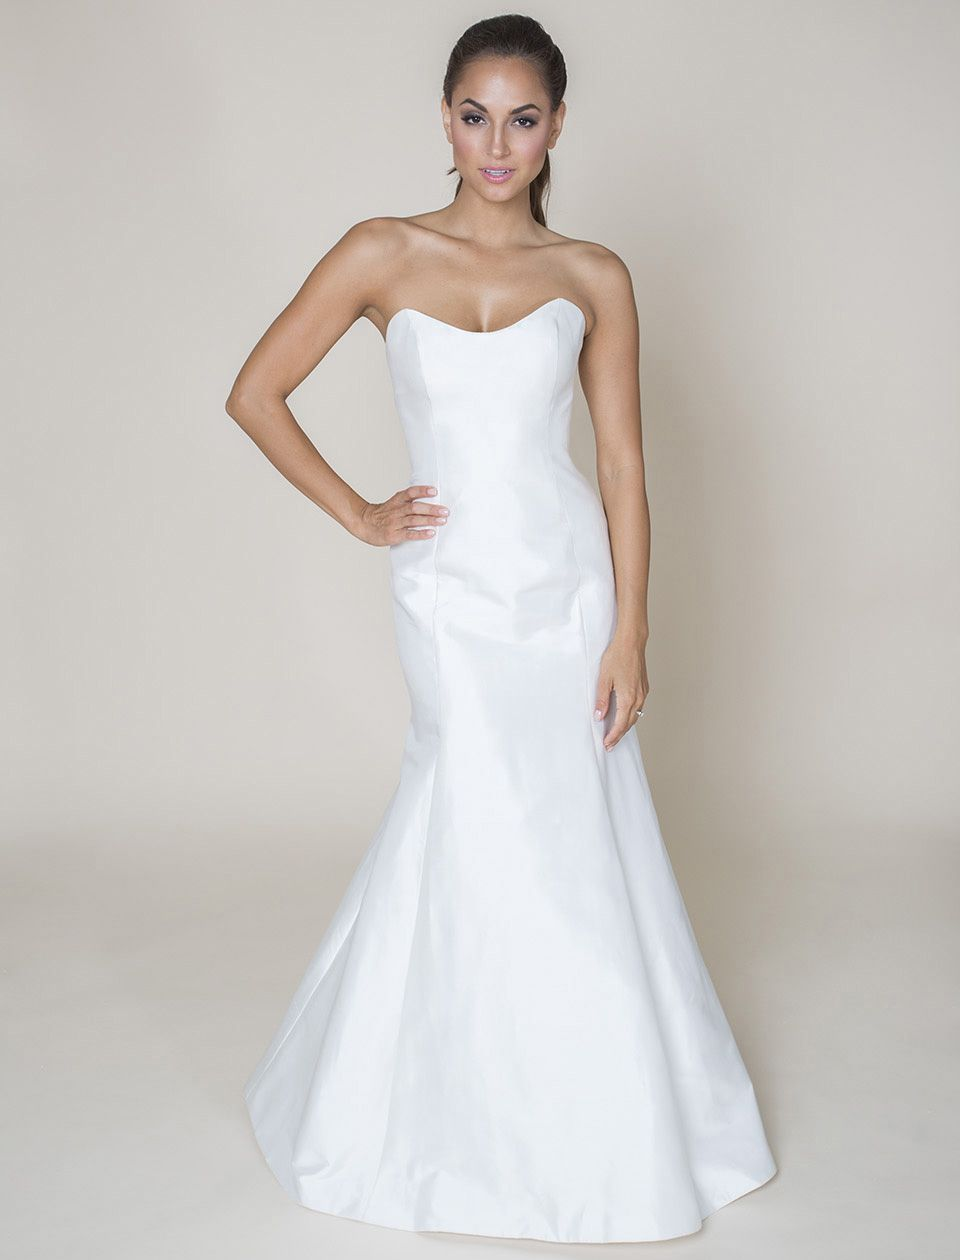 Low Back Wedding Dress Fit And Flare : Sophie paulette flirty and strong this scoop neck fit